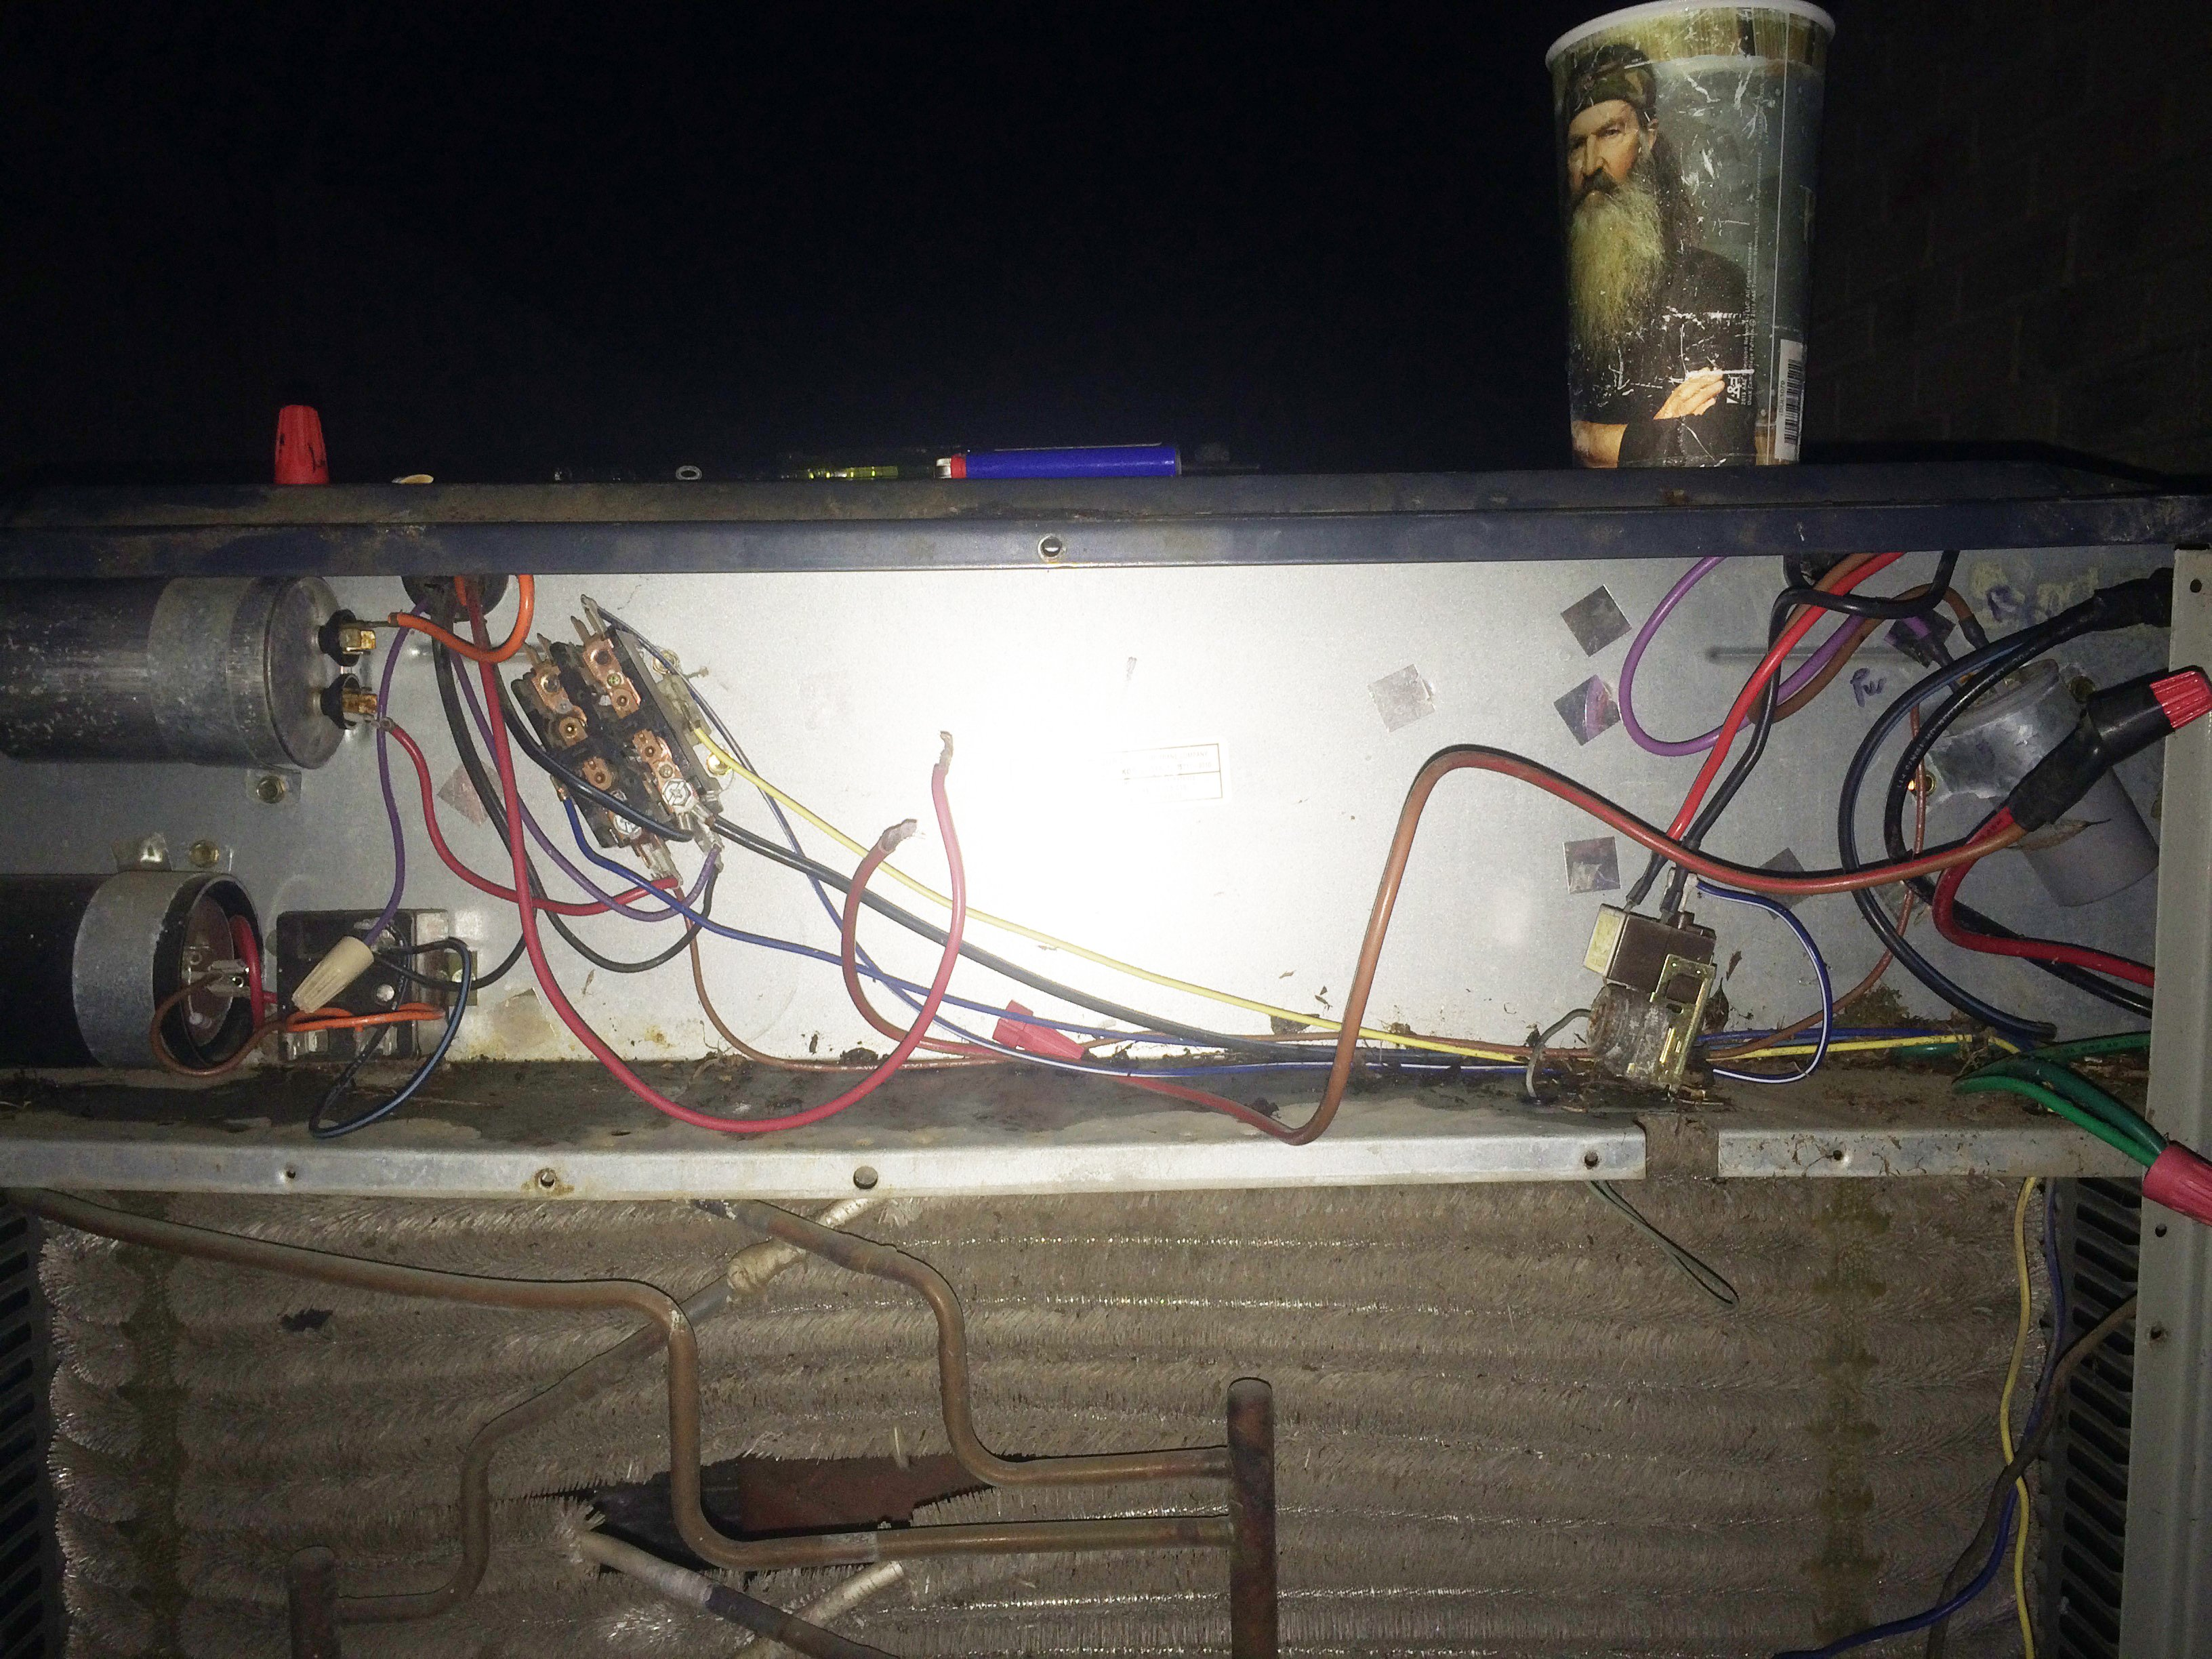 Trane xl 1200...repair guy came out and messed around with it for a while  before saying it needed a hard start kit. He | Hvac Wiring Diagram For Trane 1200 Xl |  | JustAnswer